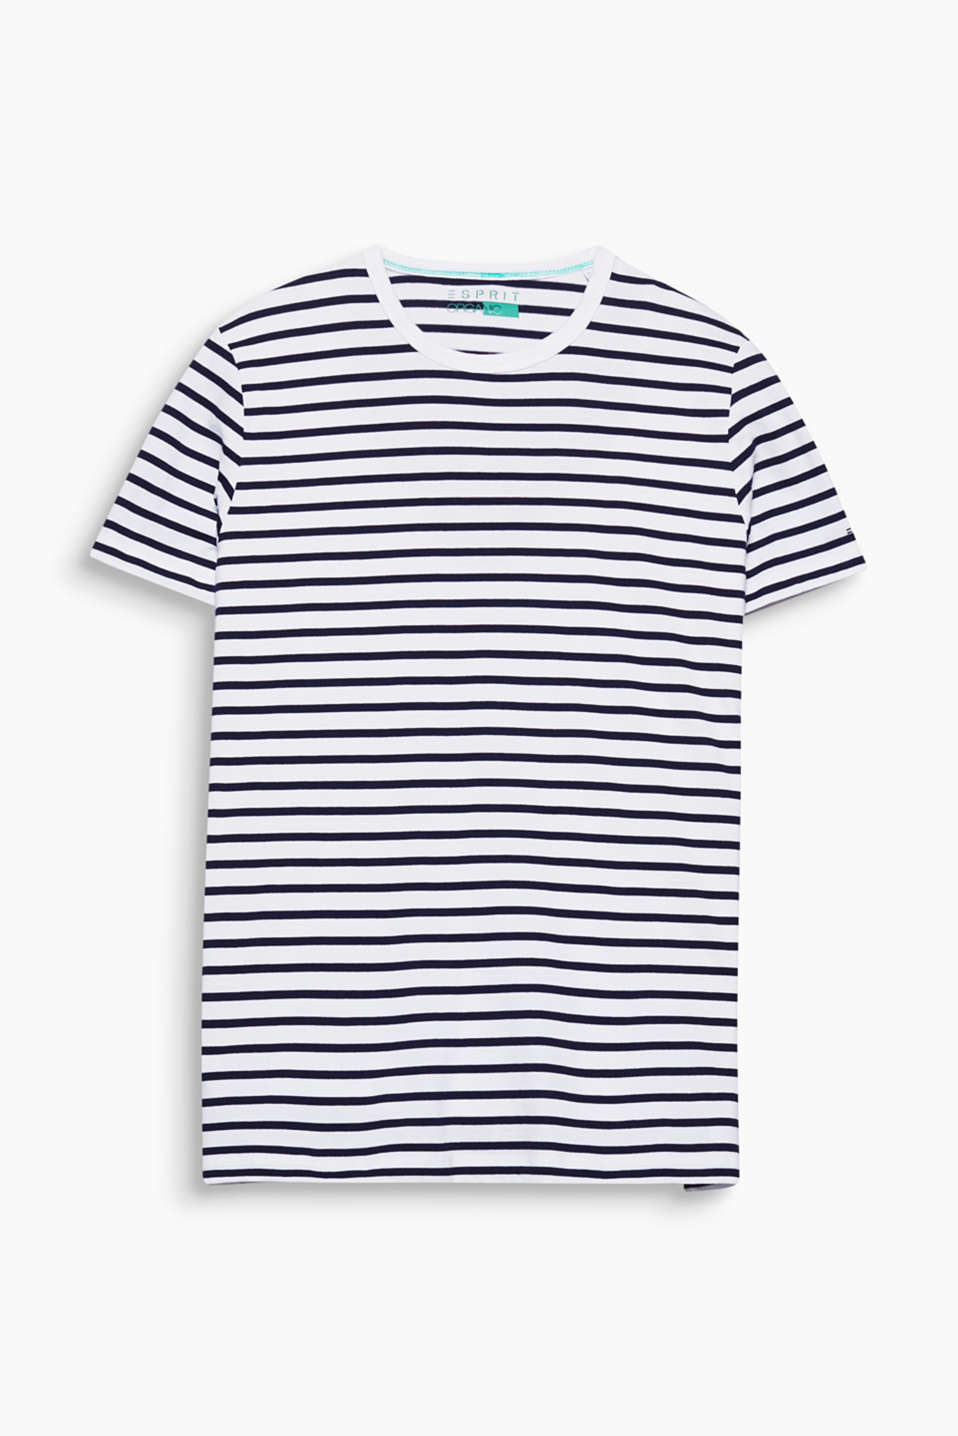 Your go-to fashion basic: nautically striped tee made of environmentally-friendly, premium organic cotton.